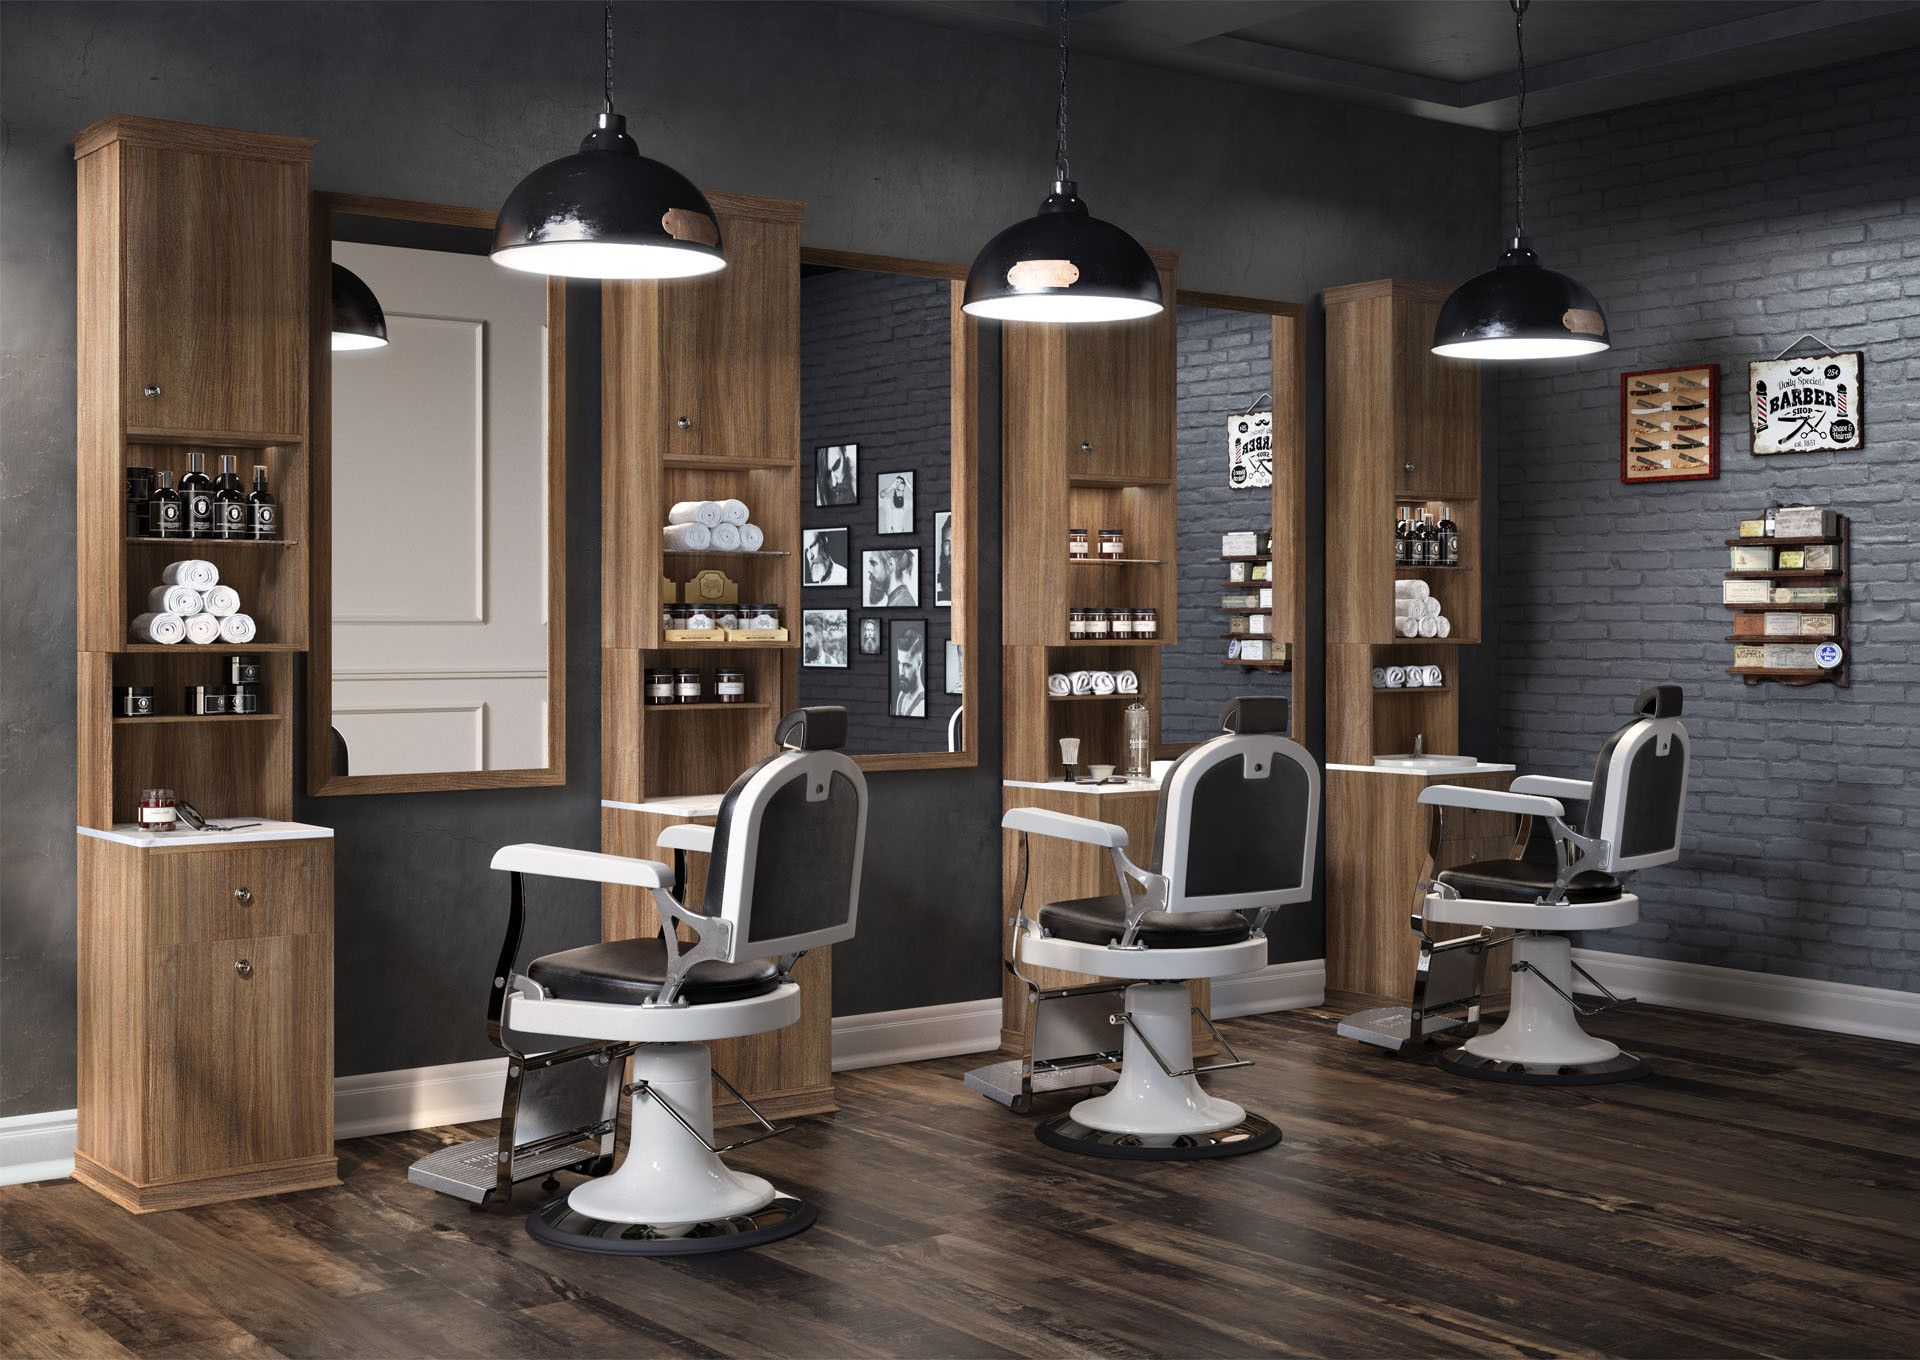 le design prix accessible pietranera srl mobilier et matriel pour salon de coiffure barbershop designbarbershop ideassalon - Barbershop Design Ideas